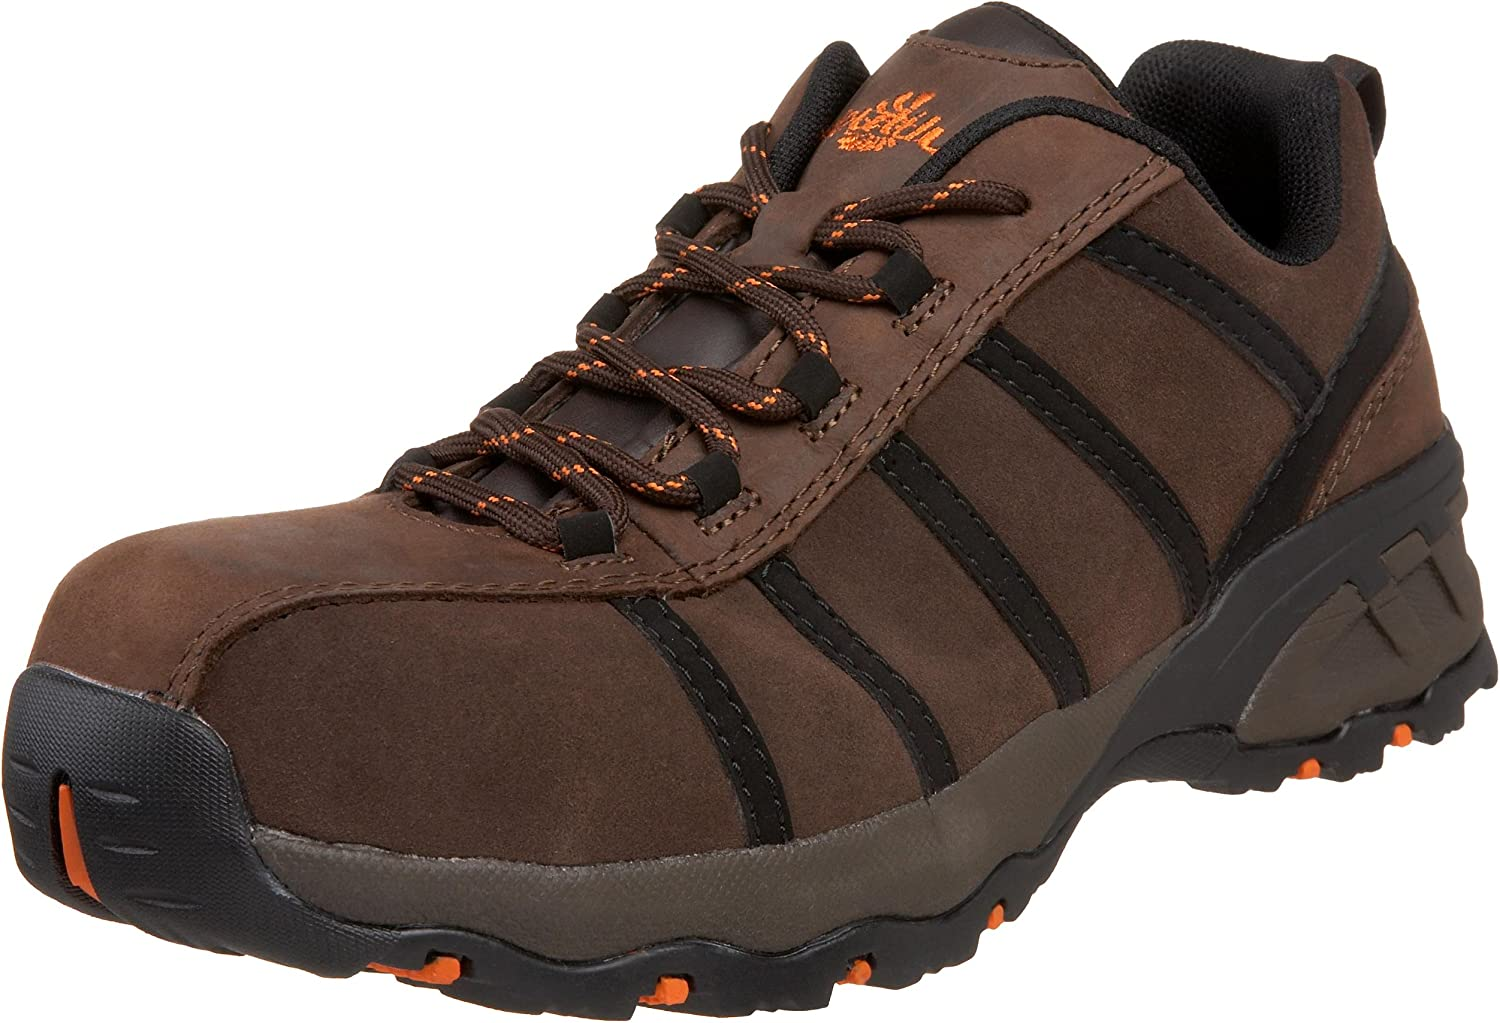 Nautilus 1708 Comp Toe No Exposed Metal EH Athletic shoes